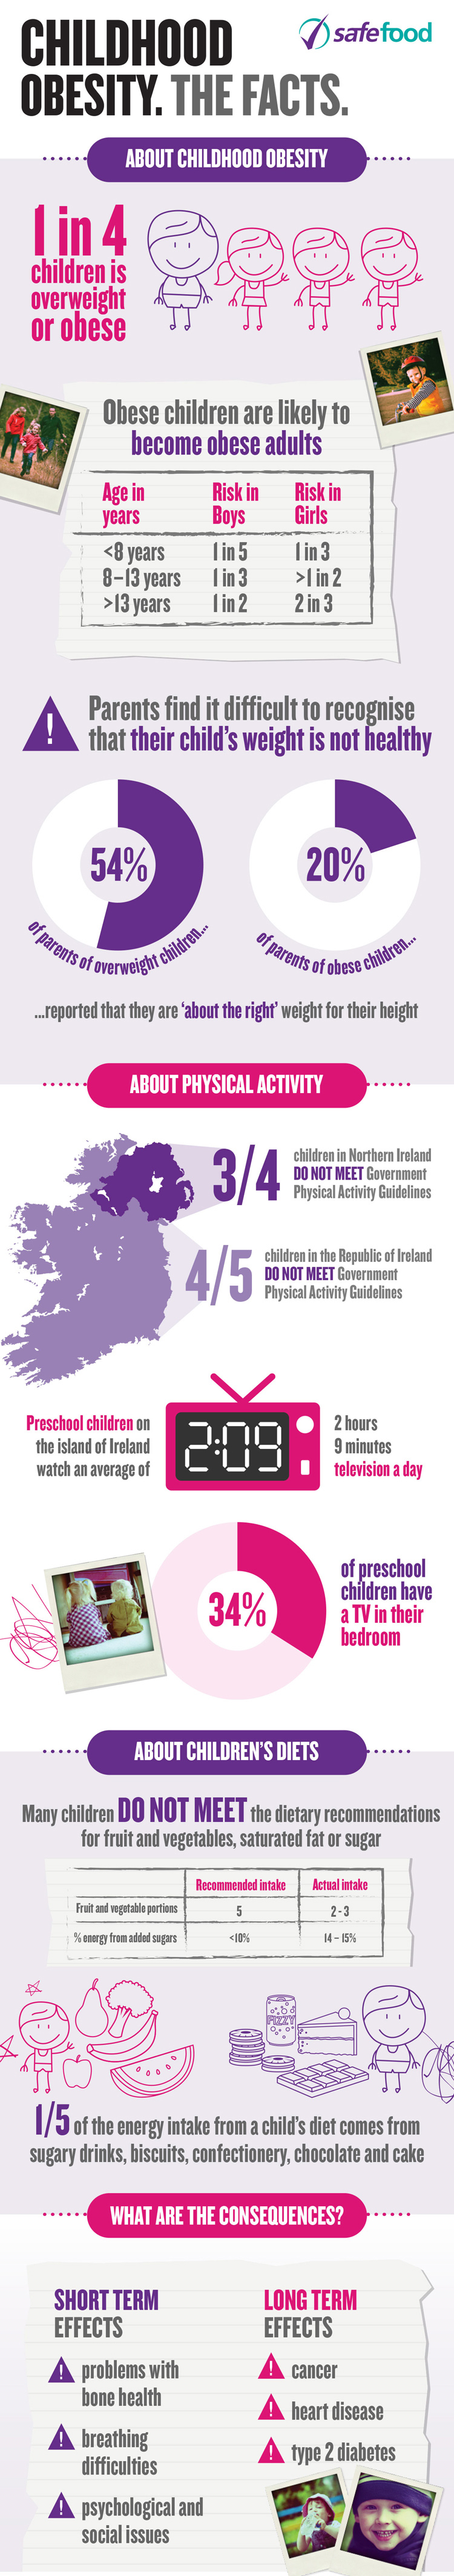 2. Childhood Obesity The Facts